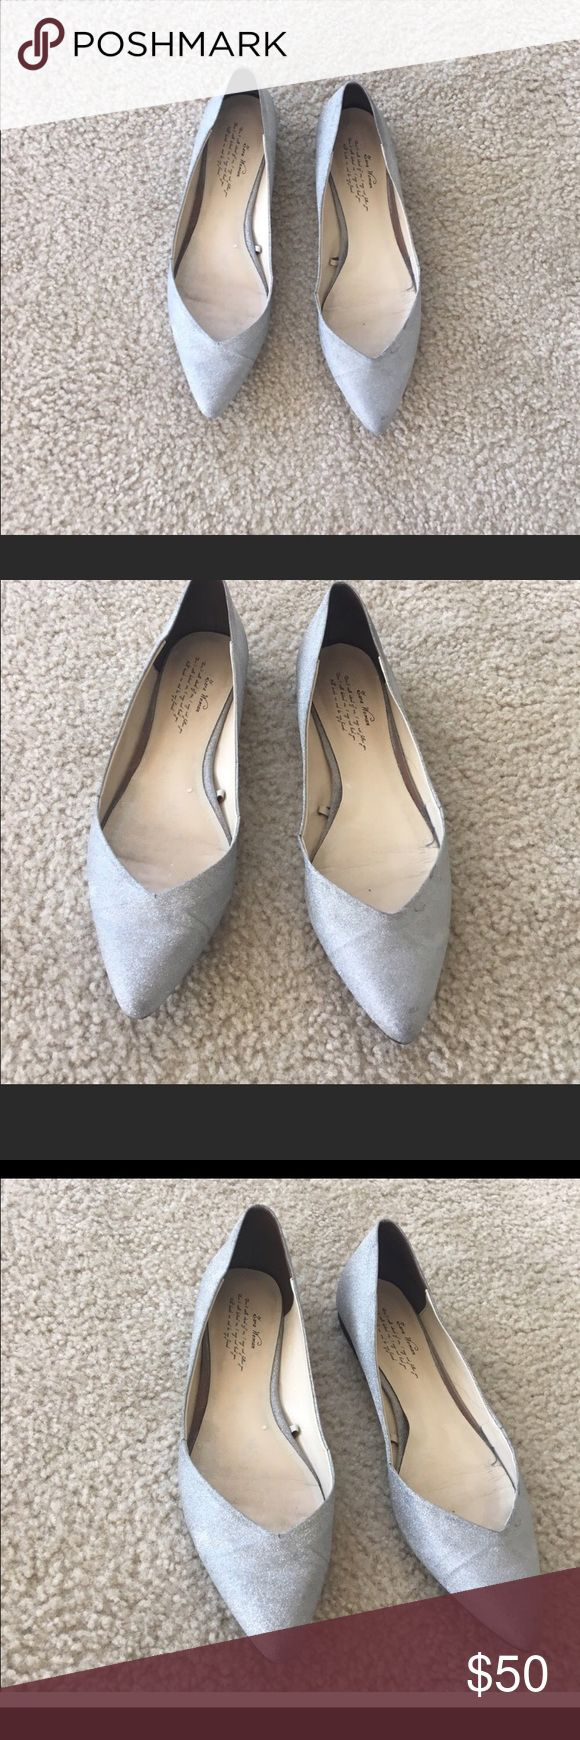 Zara flats Silver glitter sparkle pointy toe flats size 8 but fits like an 8.5. Shimmer cute women's ladies shoes no heel comfortable cute chic go with a professional outfit, jeans or leggings, or a dress Zara Shoes Flats & Loafers